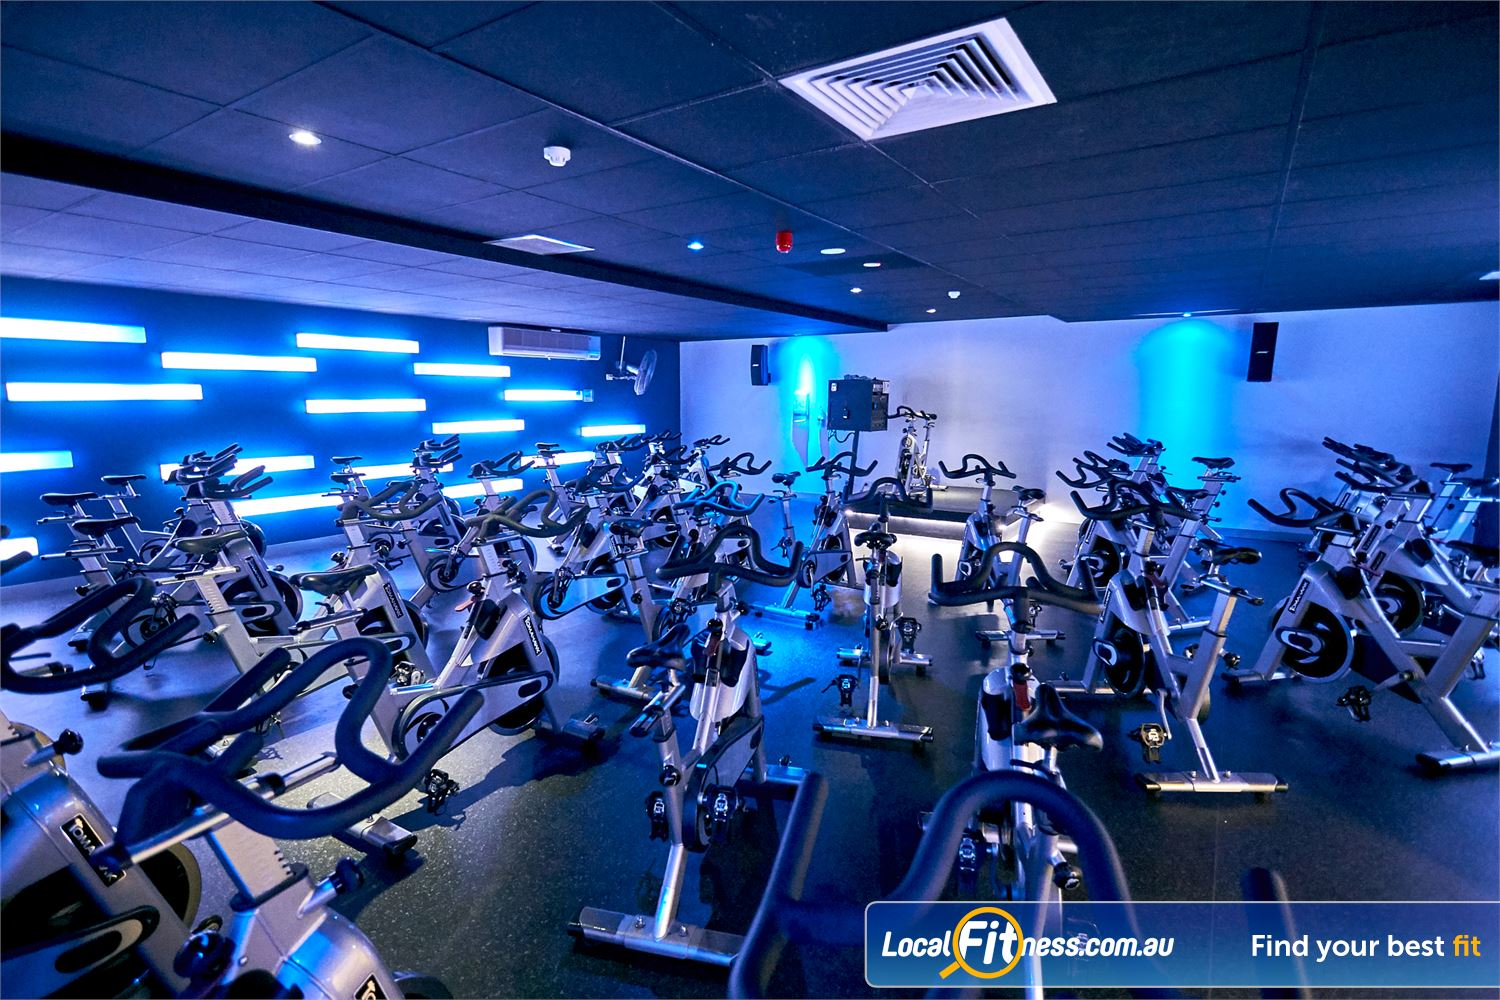 Goodlife Health Clubs Cross Roads Westbourne Park Dedicated Westbourne Park spin cycle studio.